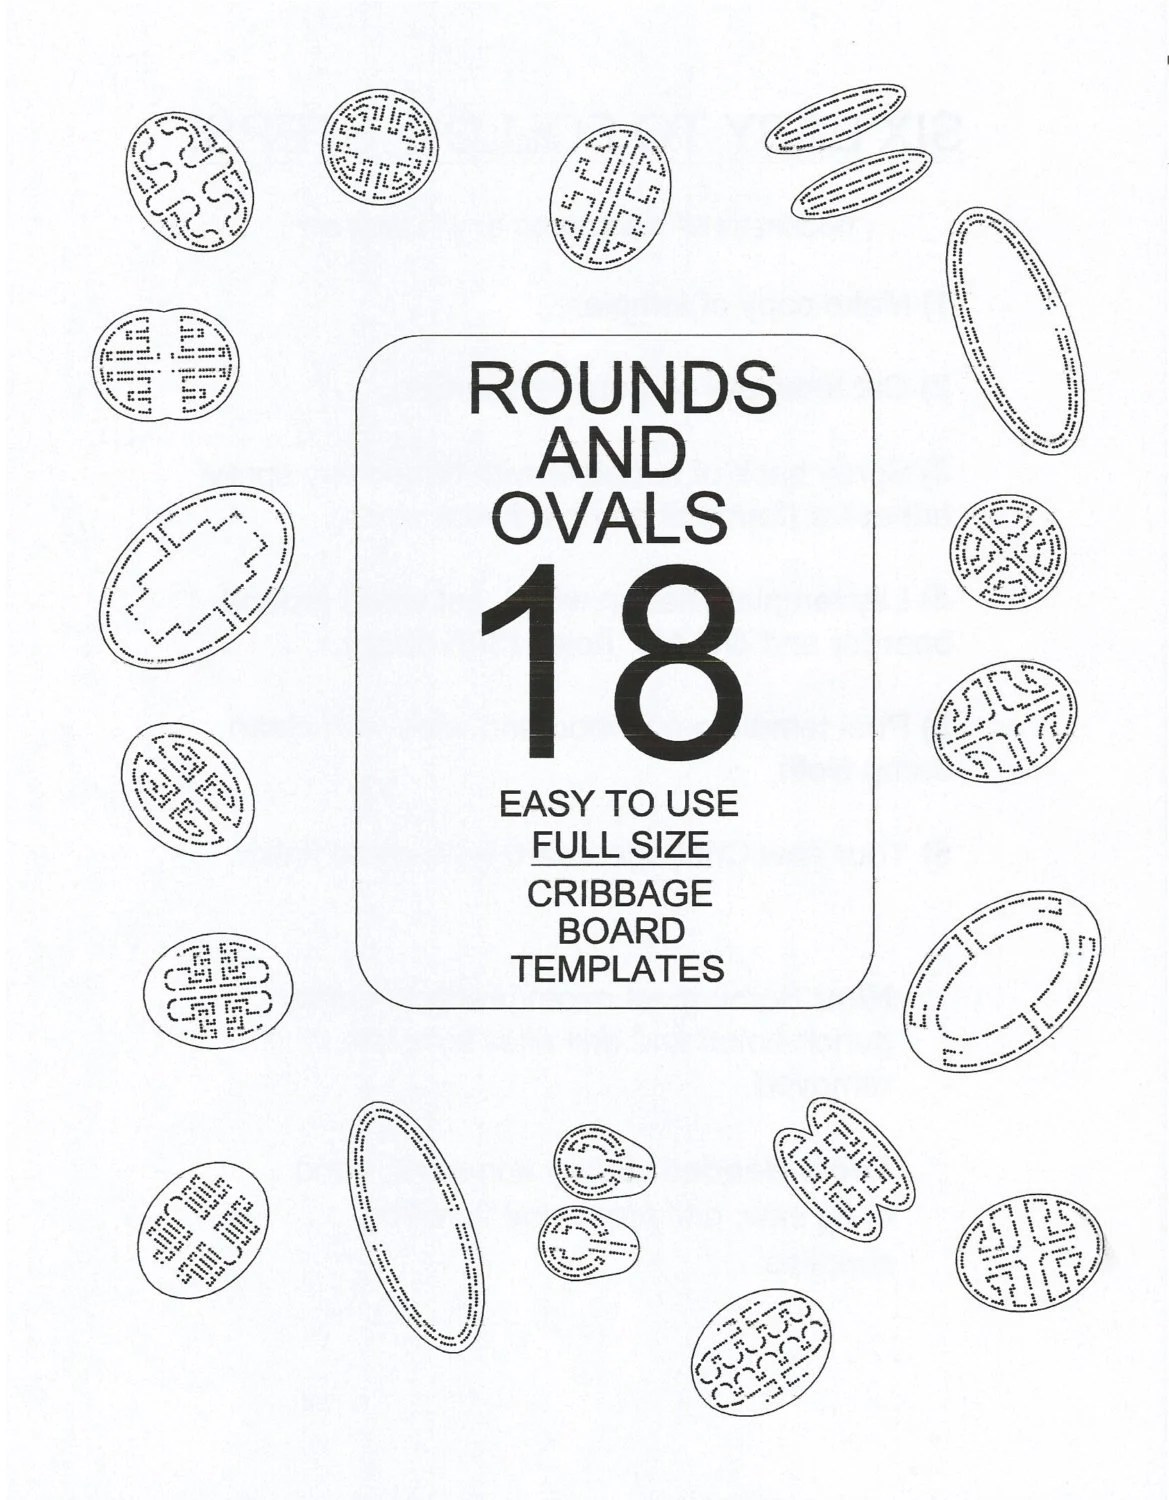 Round Cribbage Board Template